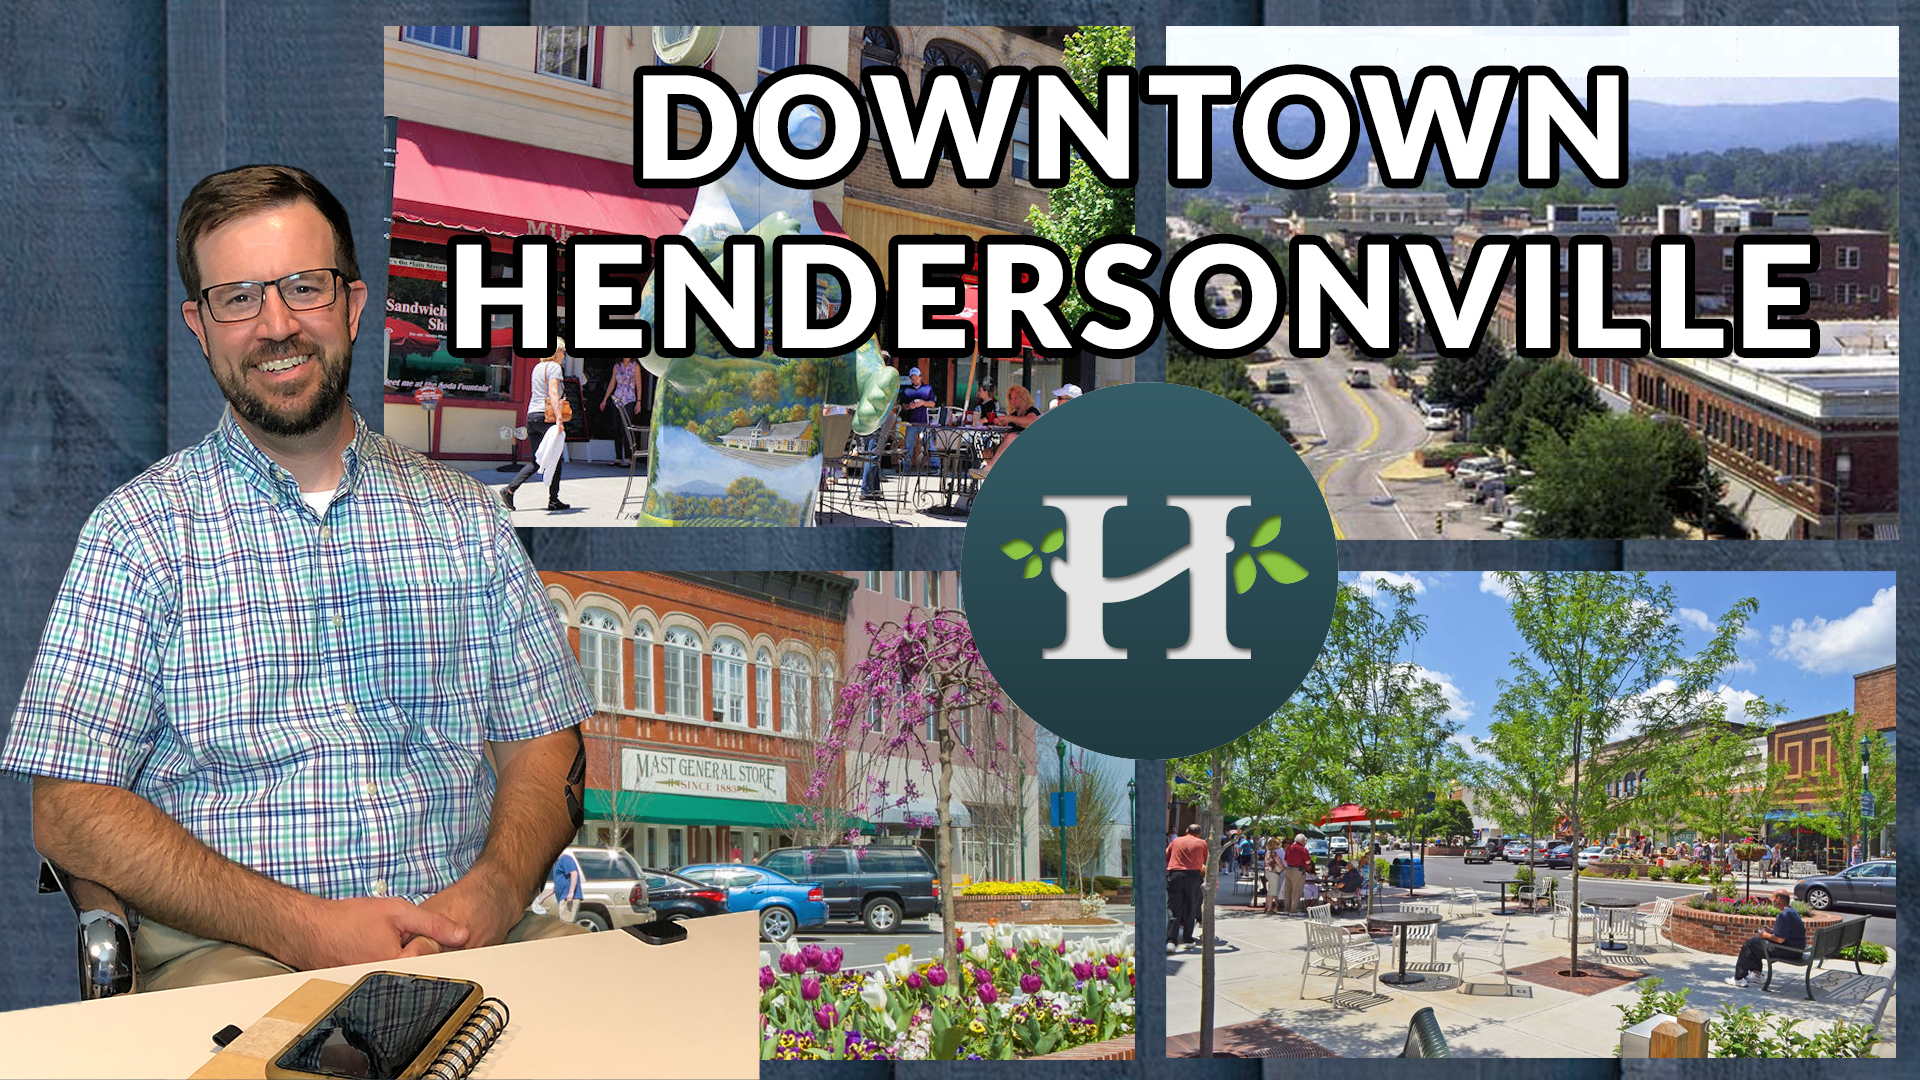 Downtown Hendersonville NC